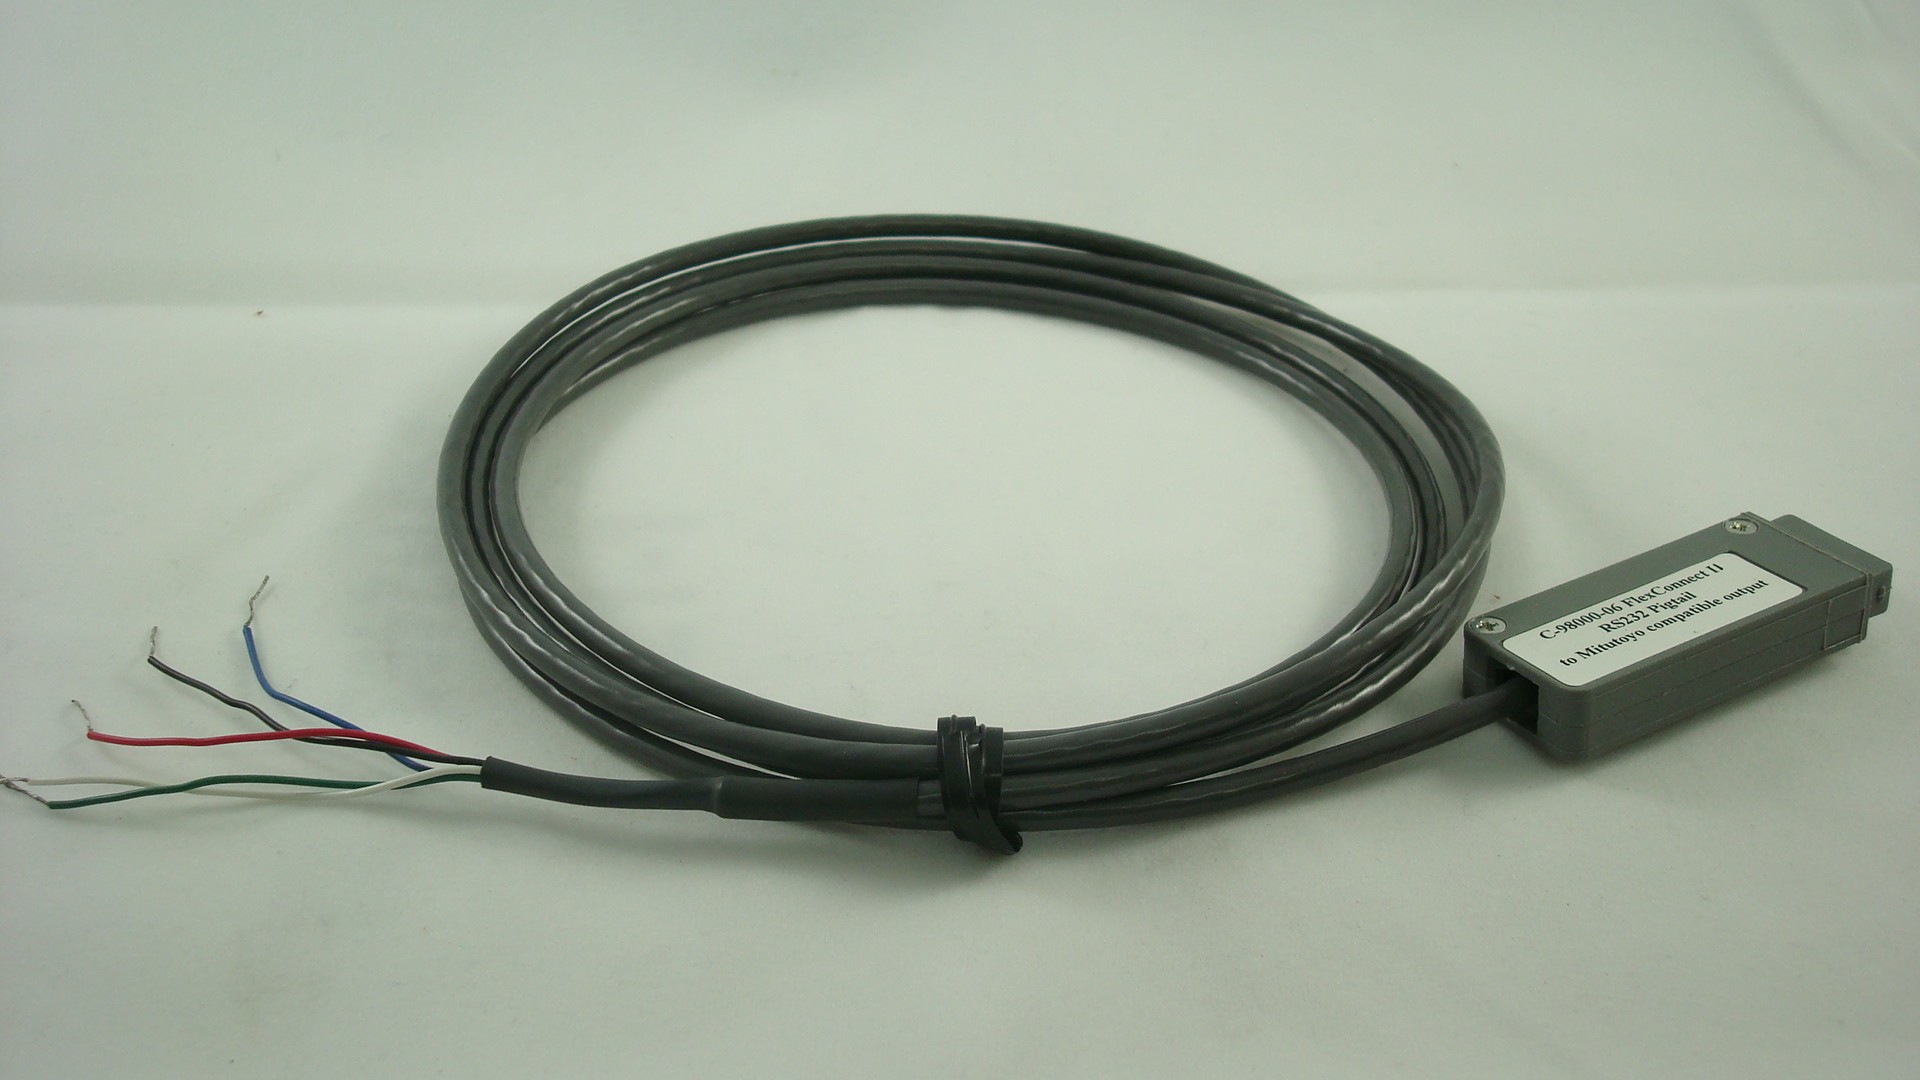 C-8000-06 RS232 Pigtail to 10 pin connector (6 ft)